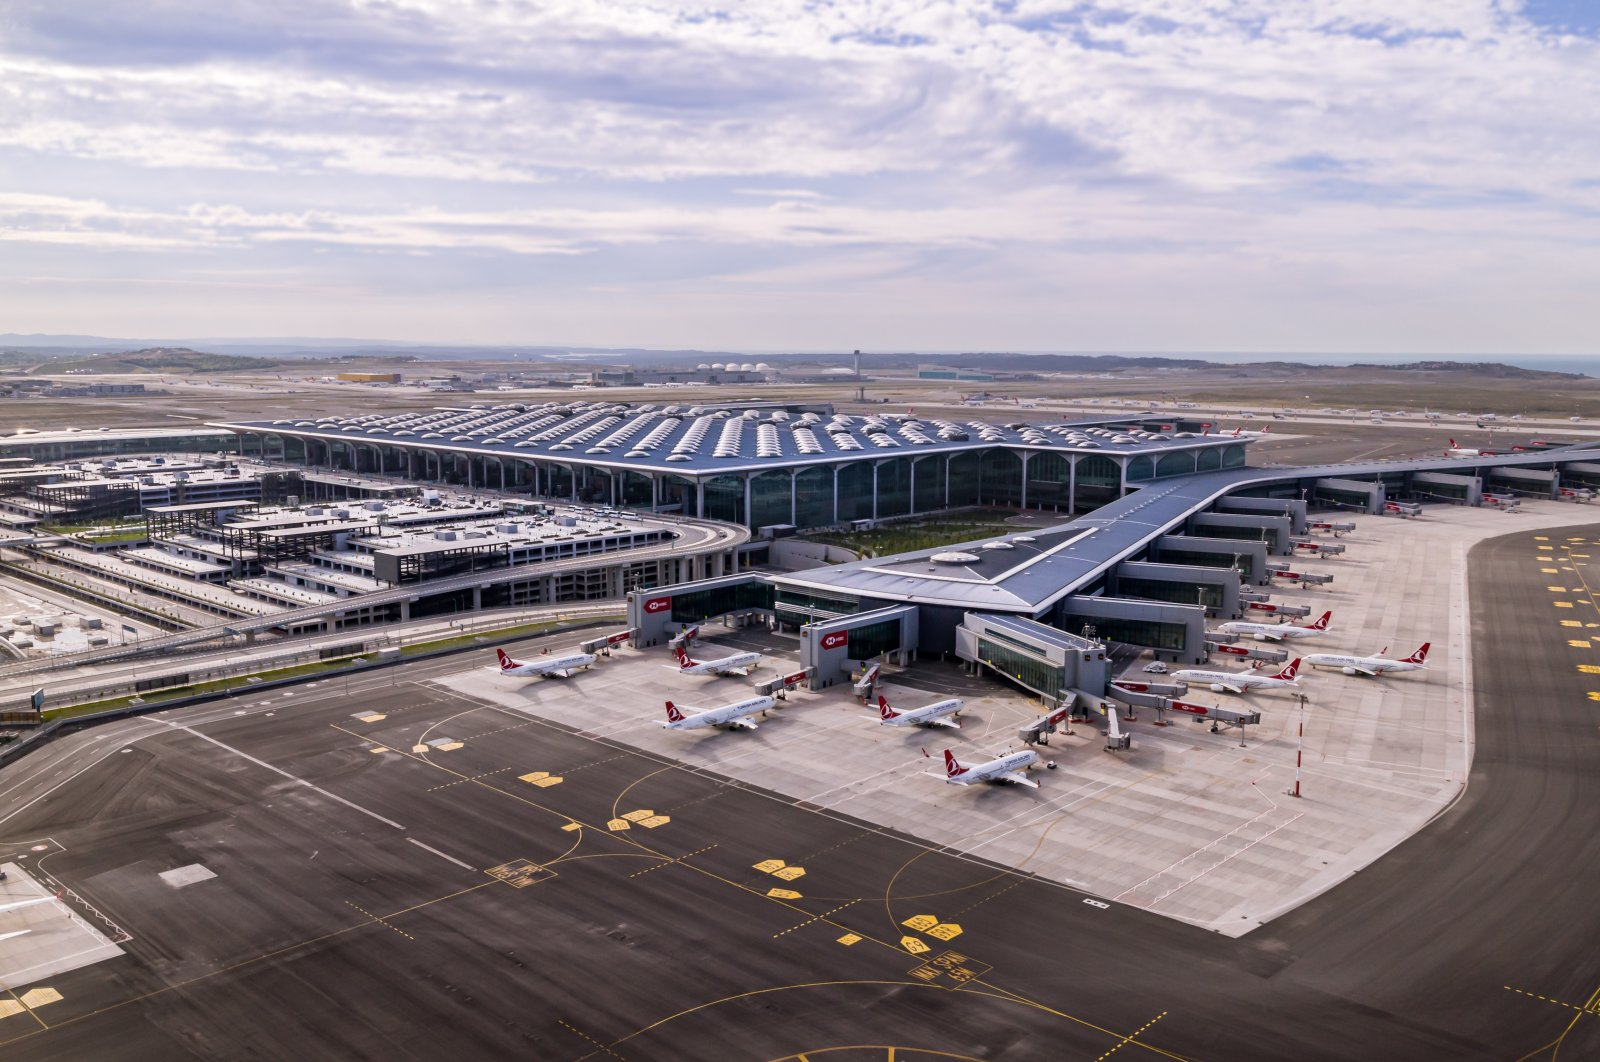 A drone photo shows planes landed in a terminal at Istanbul Airport, Istanbul, Turkey, Nov. 18, 2020. (Photo courtesy of IGA)